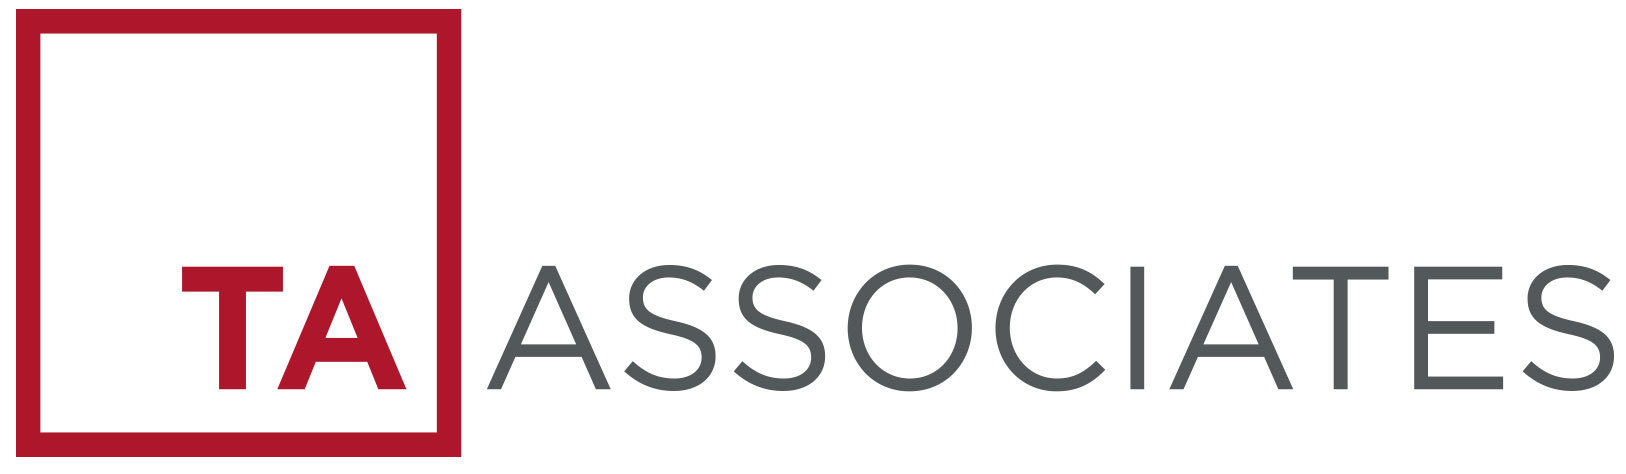 TA Associates Announces Acquisition and Combination of Global ...